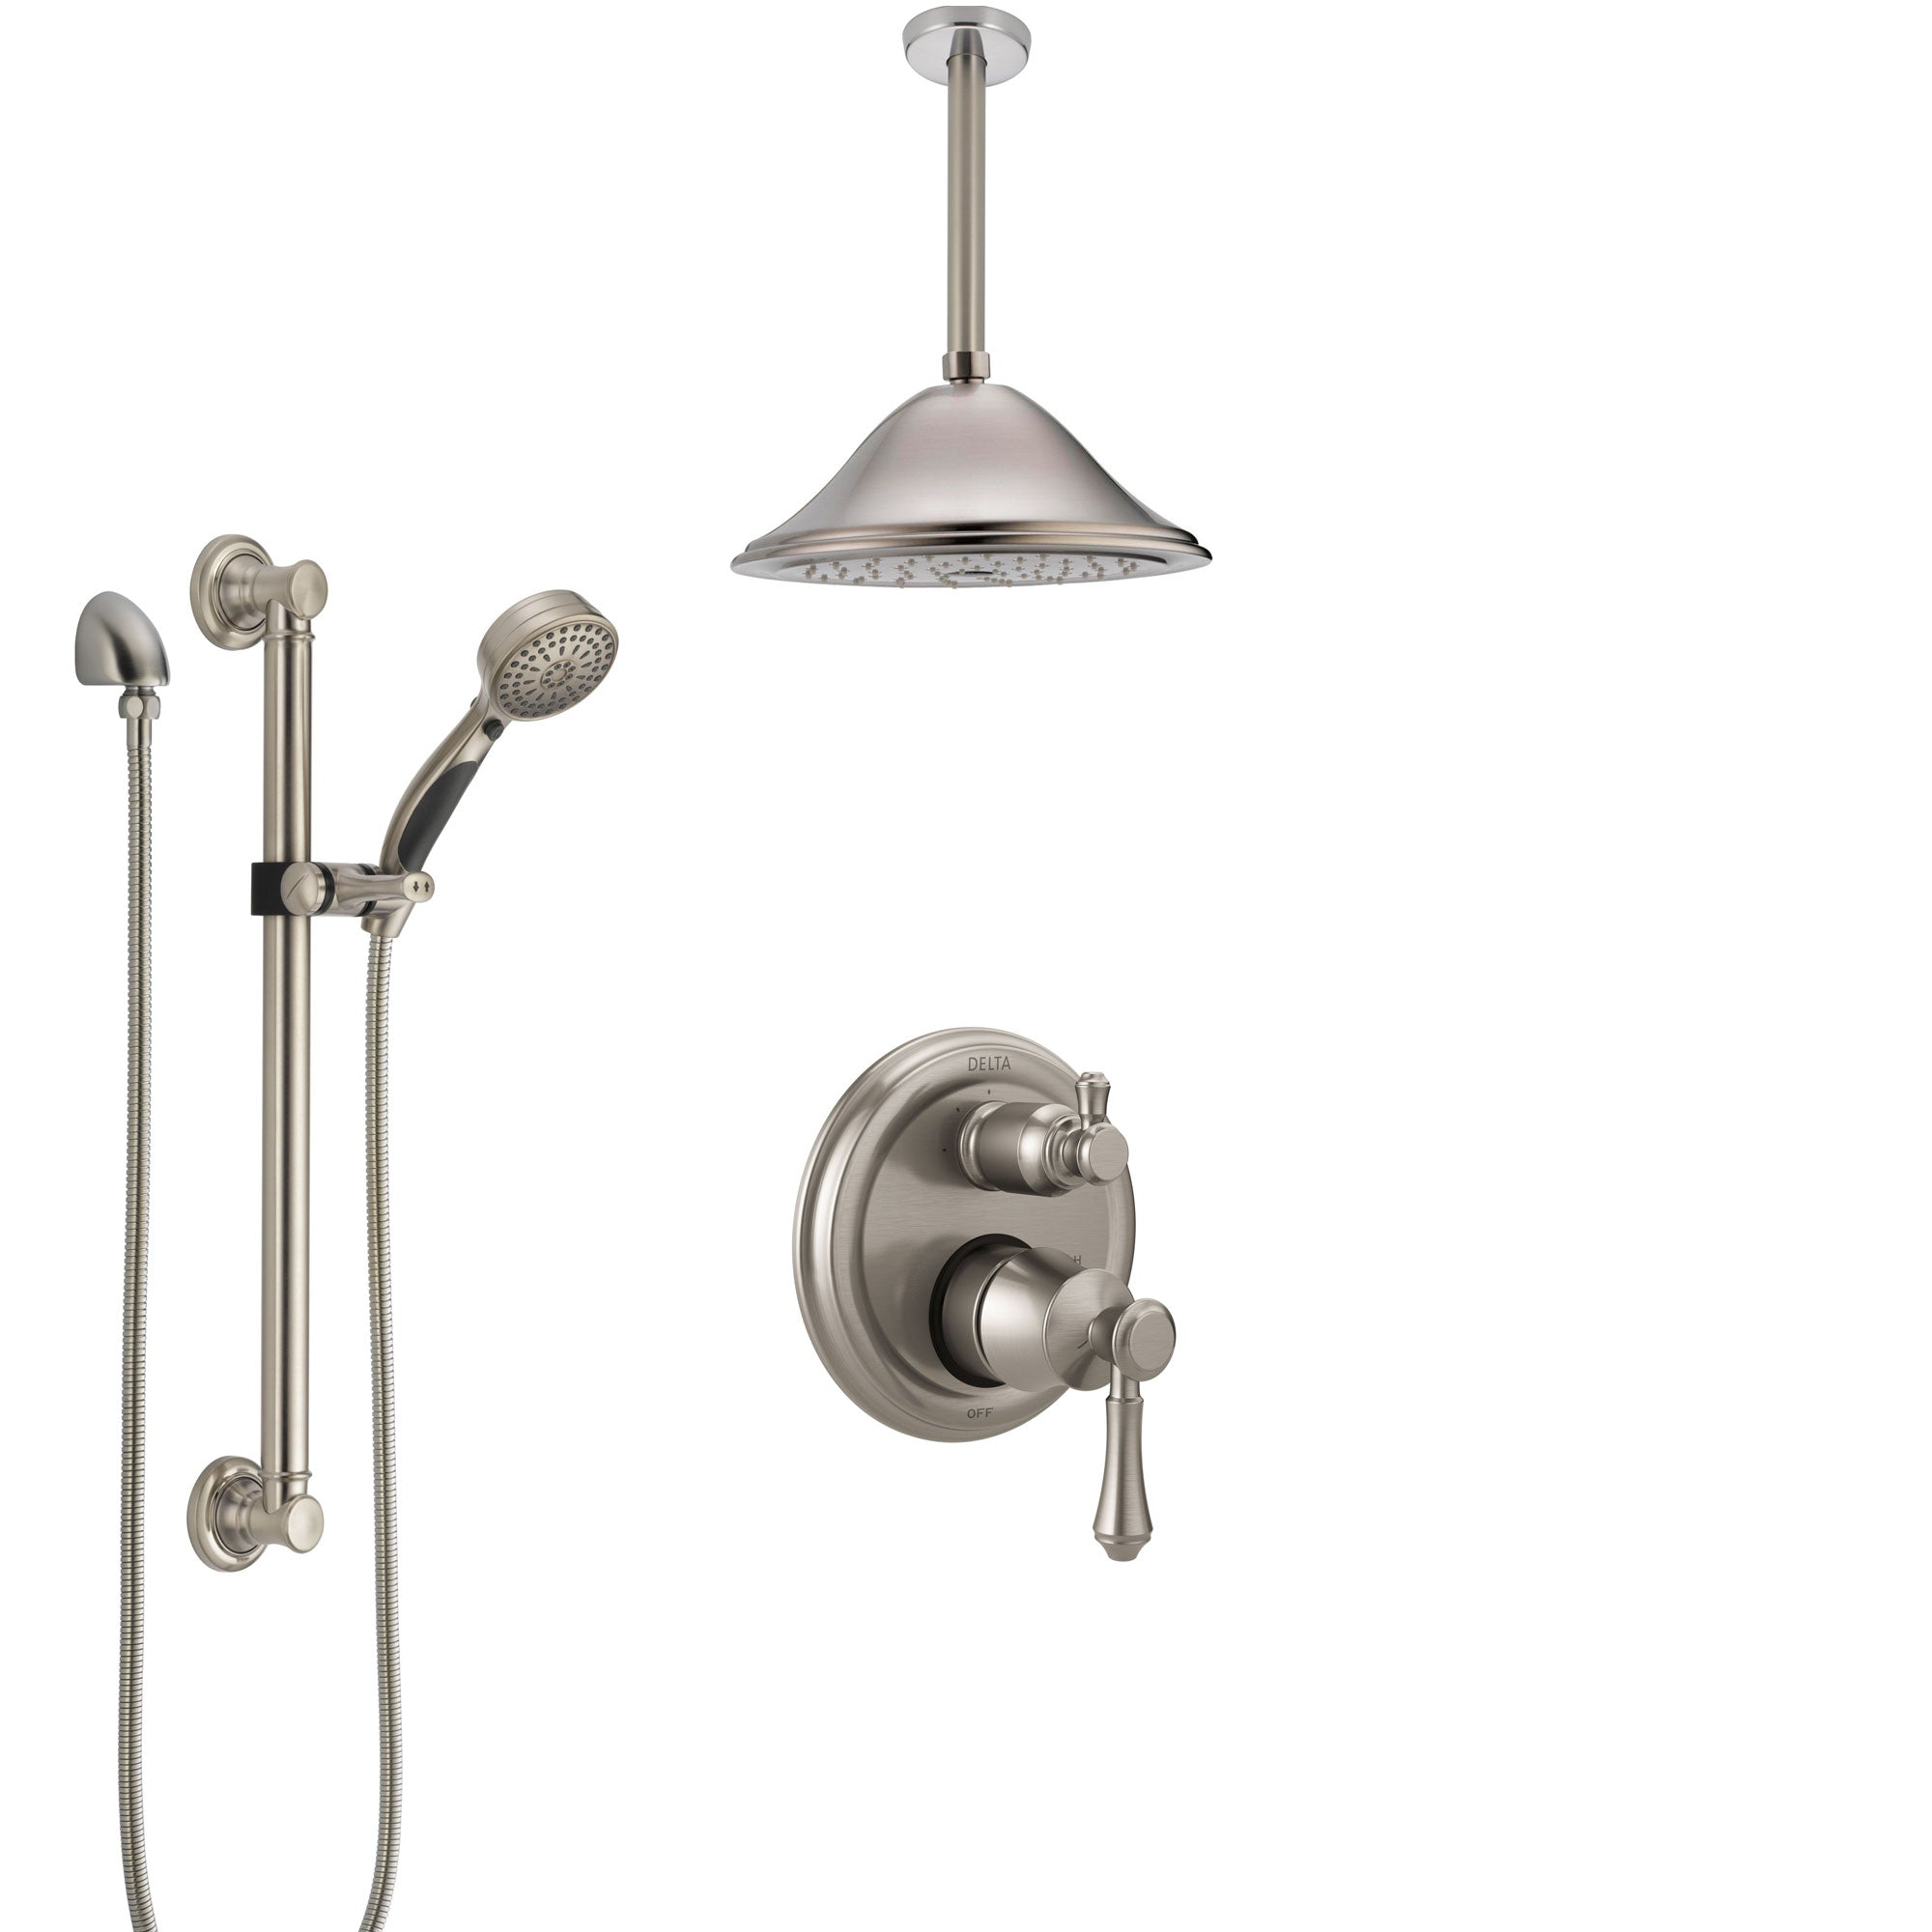 Delta Cassidy Stainless Steel Finish Shower System with Control Handle, Integrated Diverter, Ceiling Showerhead, and Grab Bar Hand Shower SS24897SS8